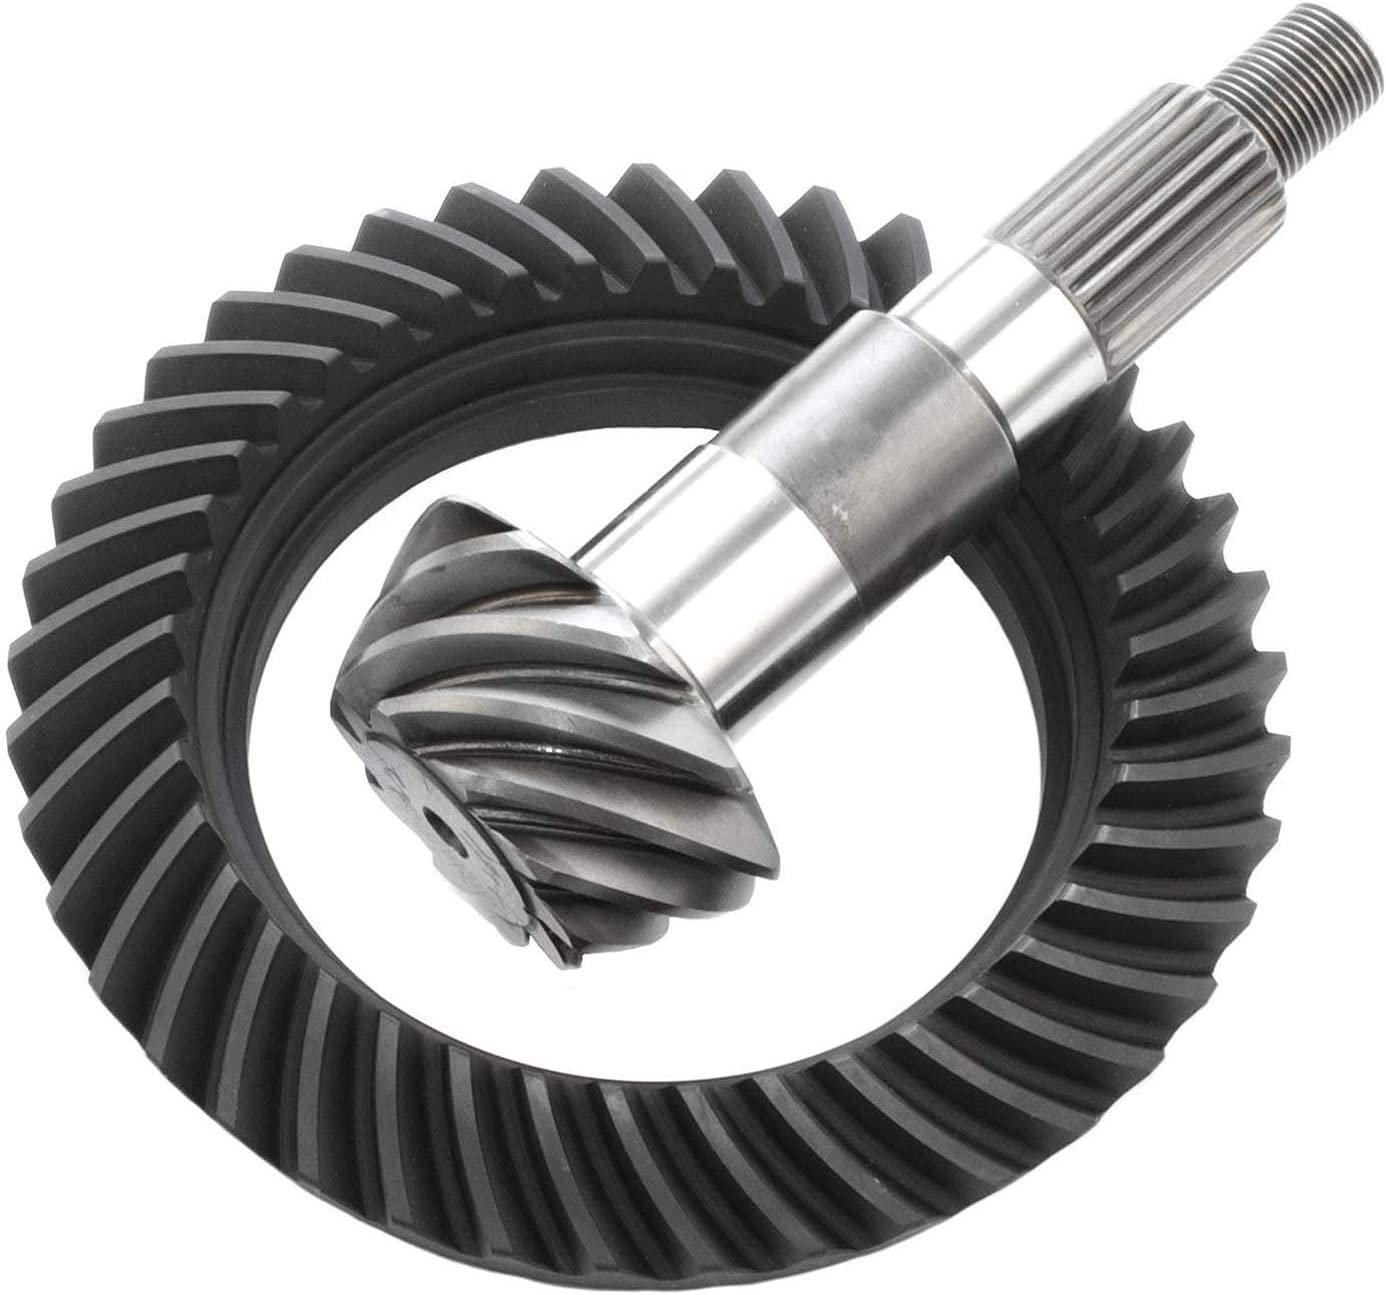 Motive Gear D30-488F Rack and Pinion, 39-8 Teeth, 4.88 Ratio